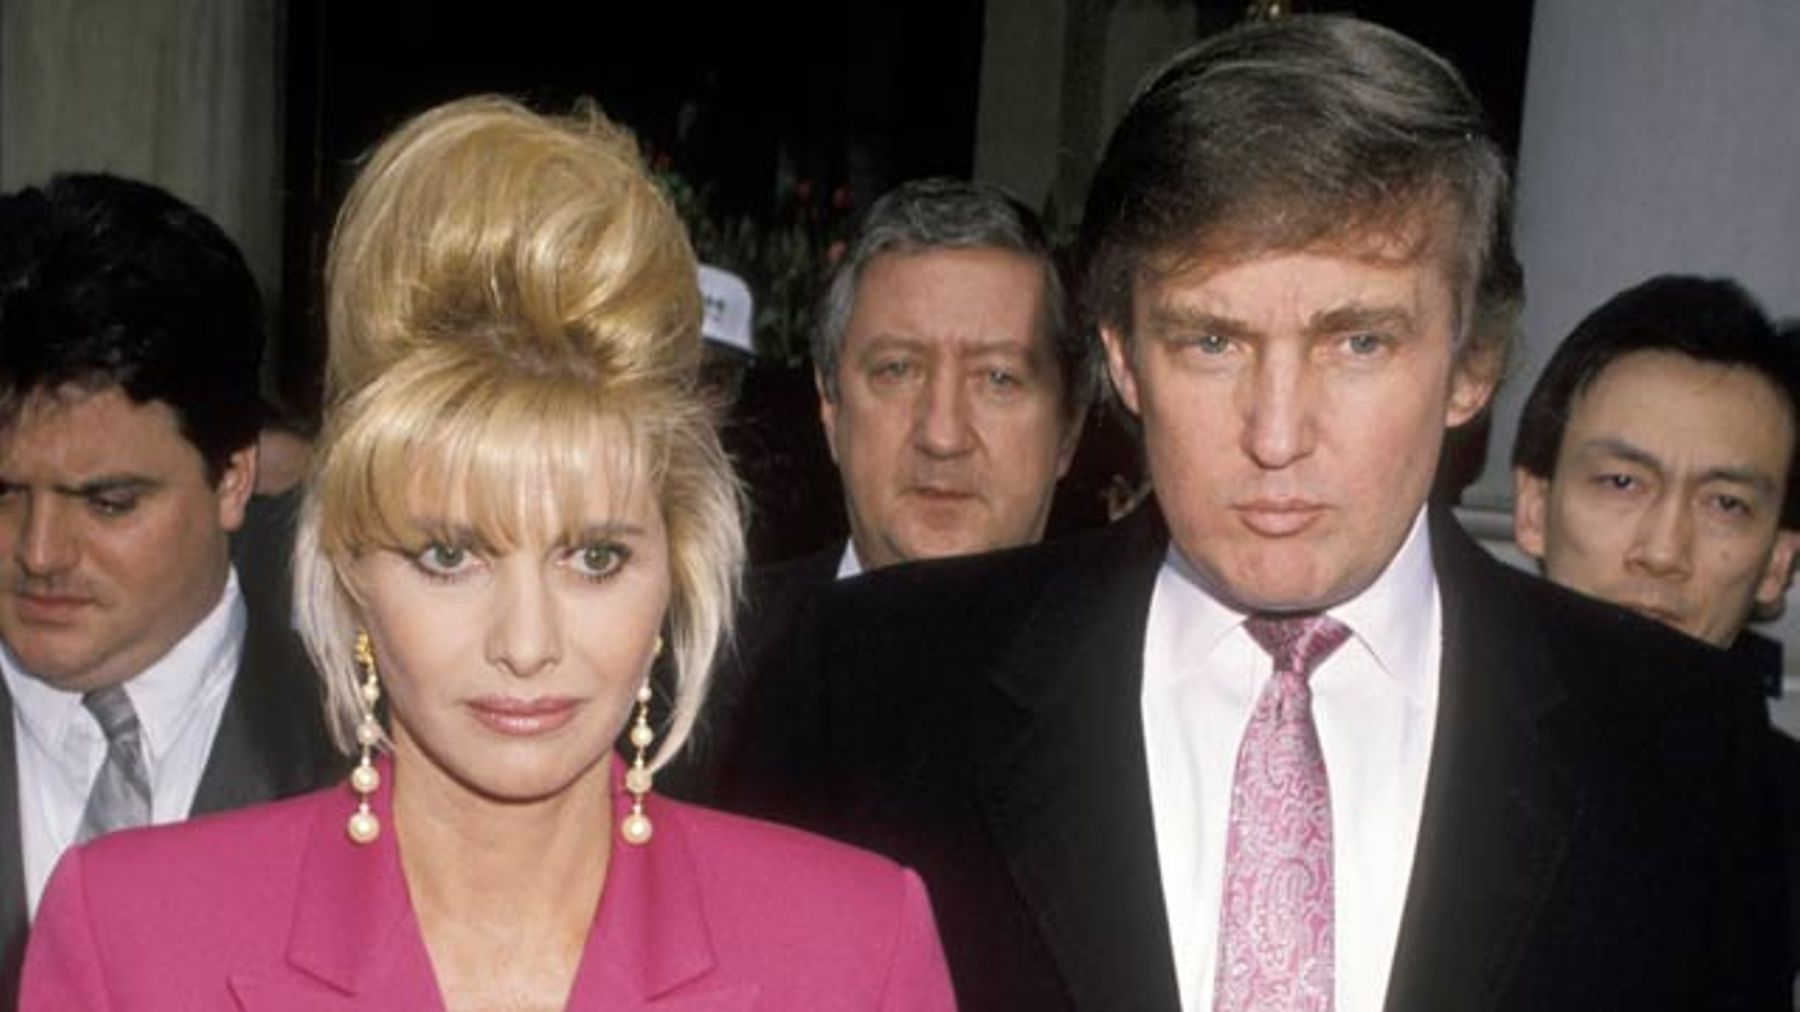 Ivana And Donald Trump Wedding 1977.Ivana Trump Starts Feud With Melania By Calling Herself The Real